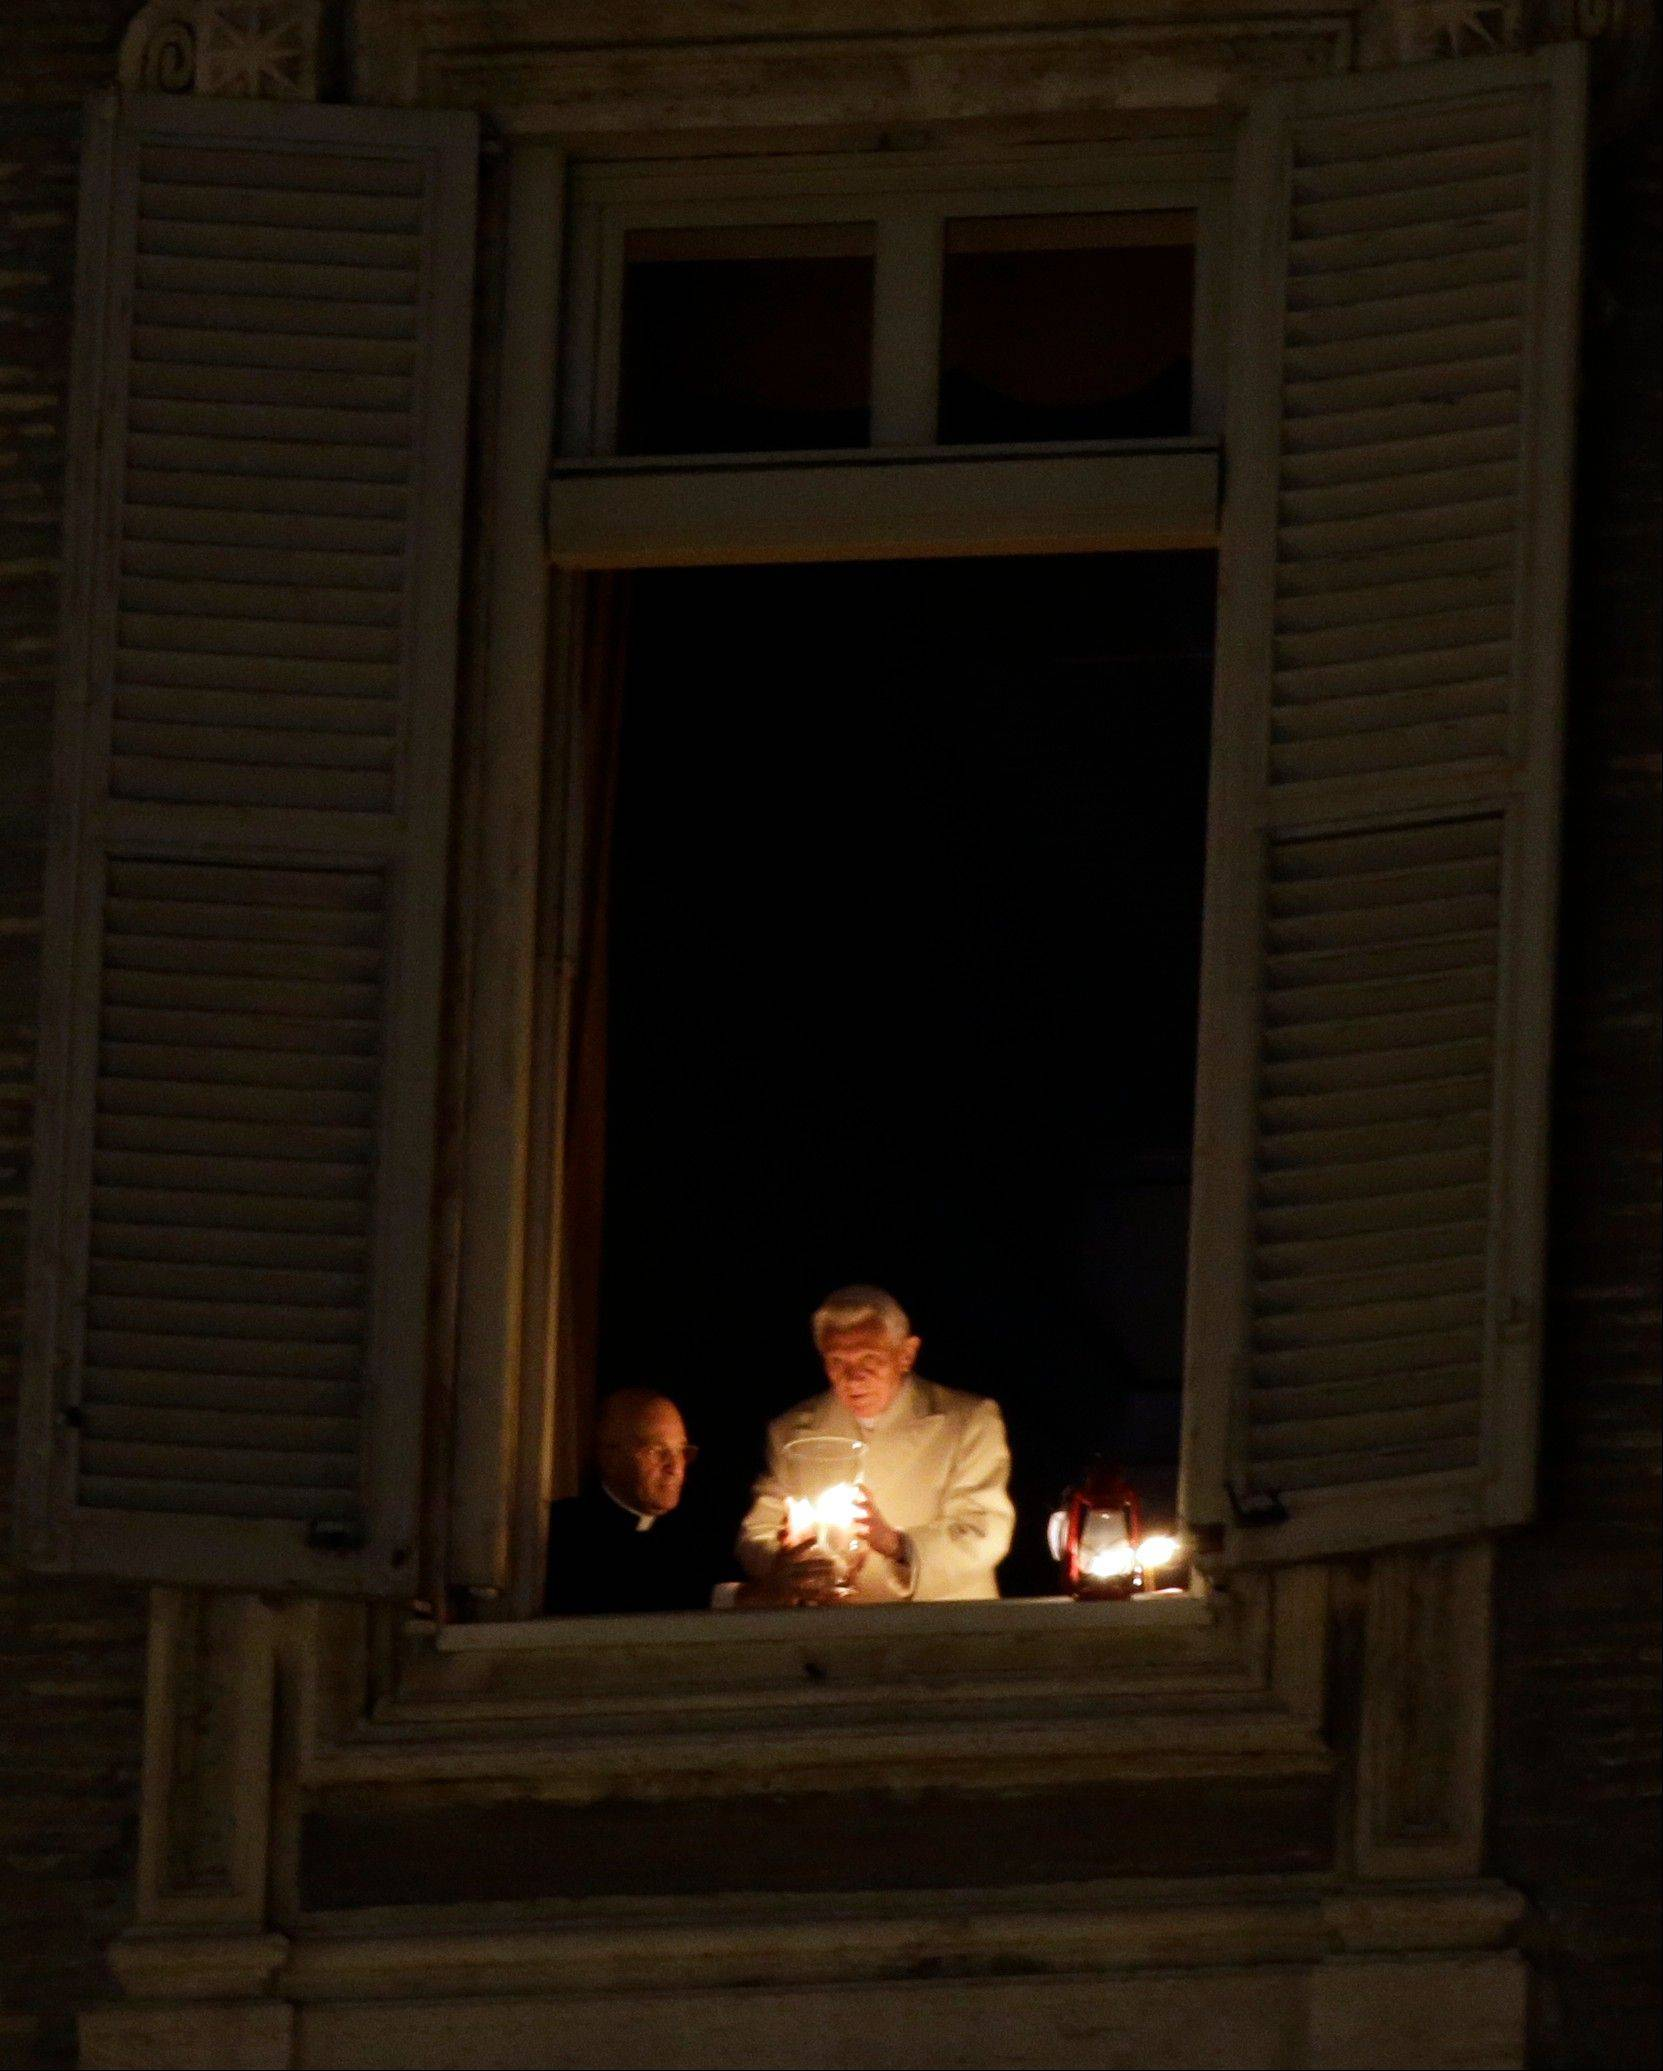 Pope Benedict XVI lights a candle at his studio window overlooking St. Peter's Square at the Vatican, after the unveiling of the Nativity scene, Monday, Dec. 24, 2012. Pope Benedict XVI has lit a Christmas peace candle set on the windowsill of his private studio overlooking square. Pilgrims, tourists and Romans gathered below in St. Peter's Square for the inauguration Monday evening of a Nativity scene and cheered when the flame was lit. Later, he will appear in St. Peter's Basilica to lead Christmas Eve Mass.